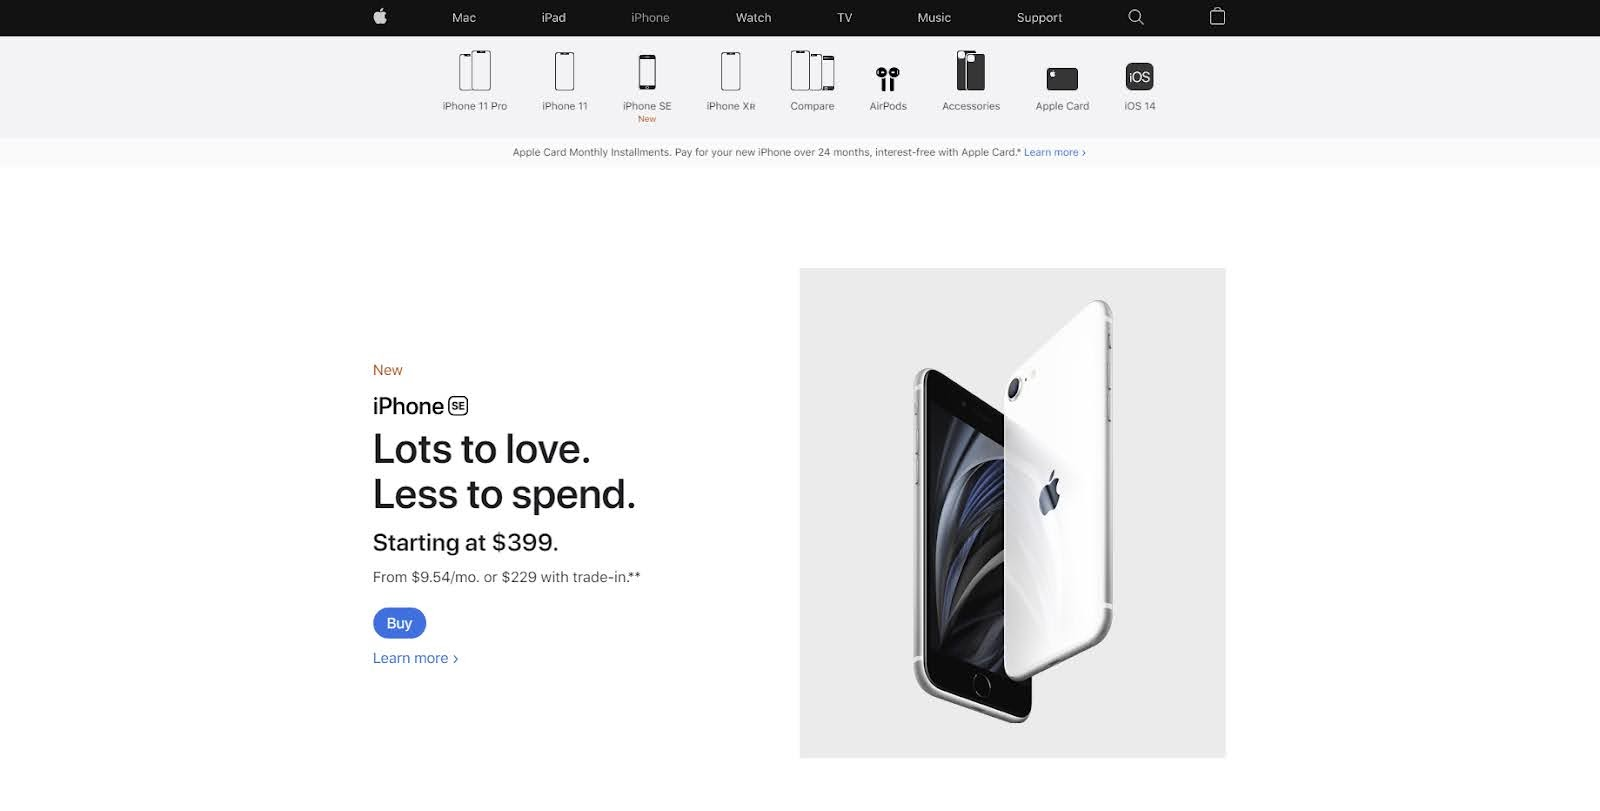 One of the most influential websites to use white space effectively is the Apple website.